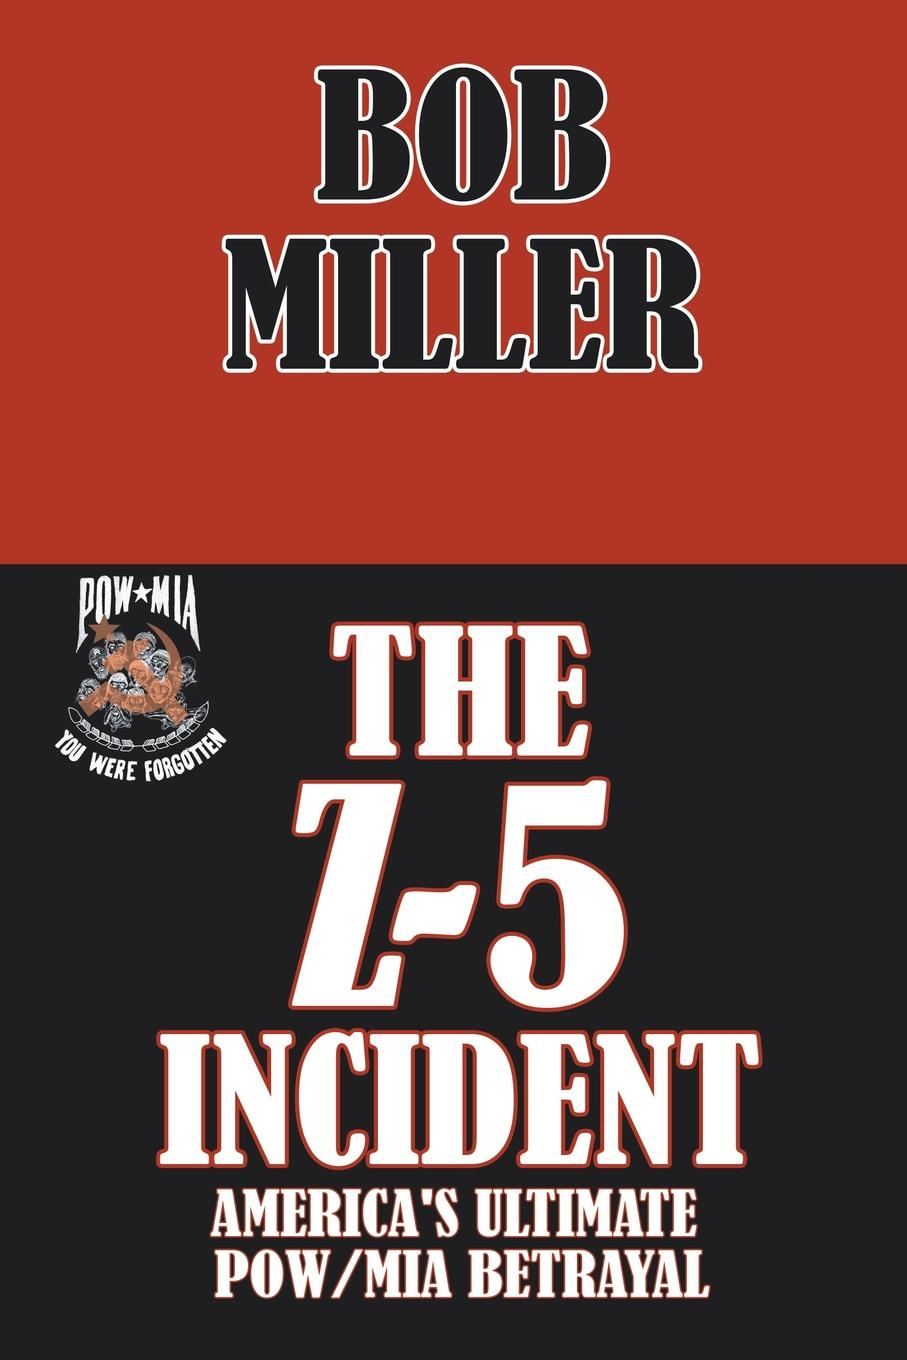 Miller The Z-5 Incident. America's Ultimate POW/MIA Betrayal michelle reid the ultimate betrayal